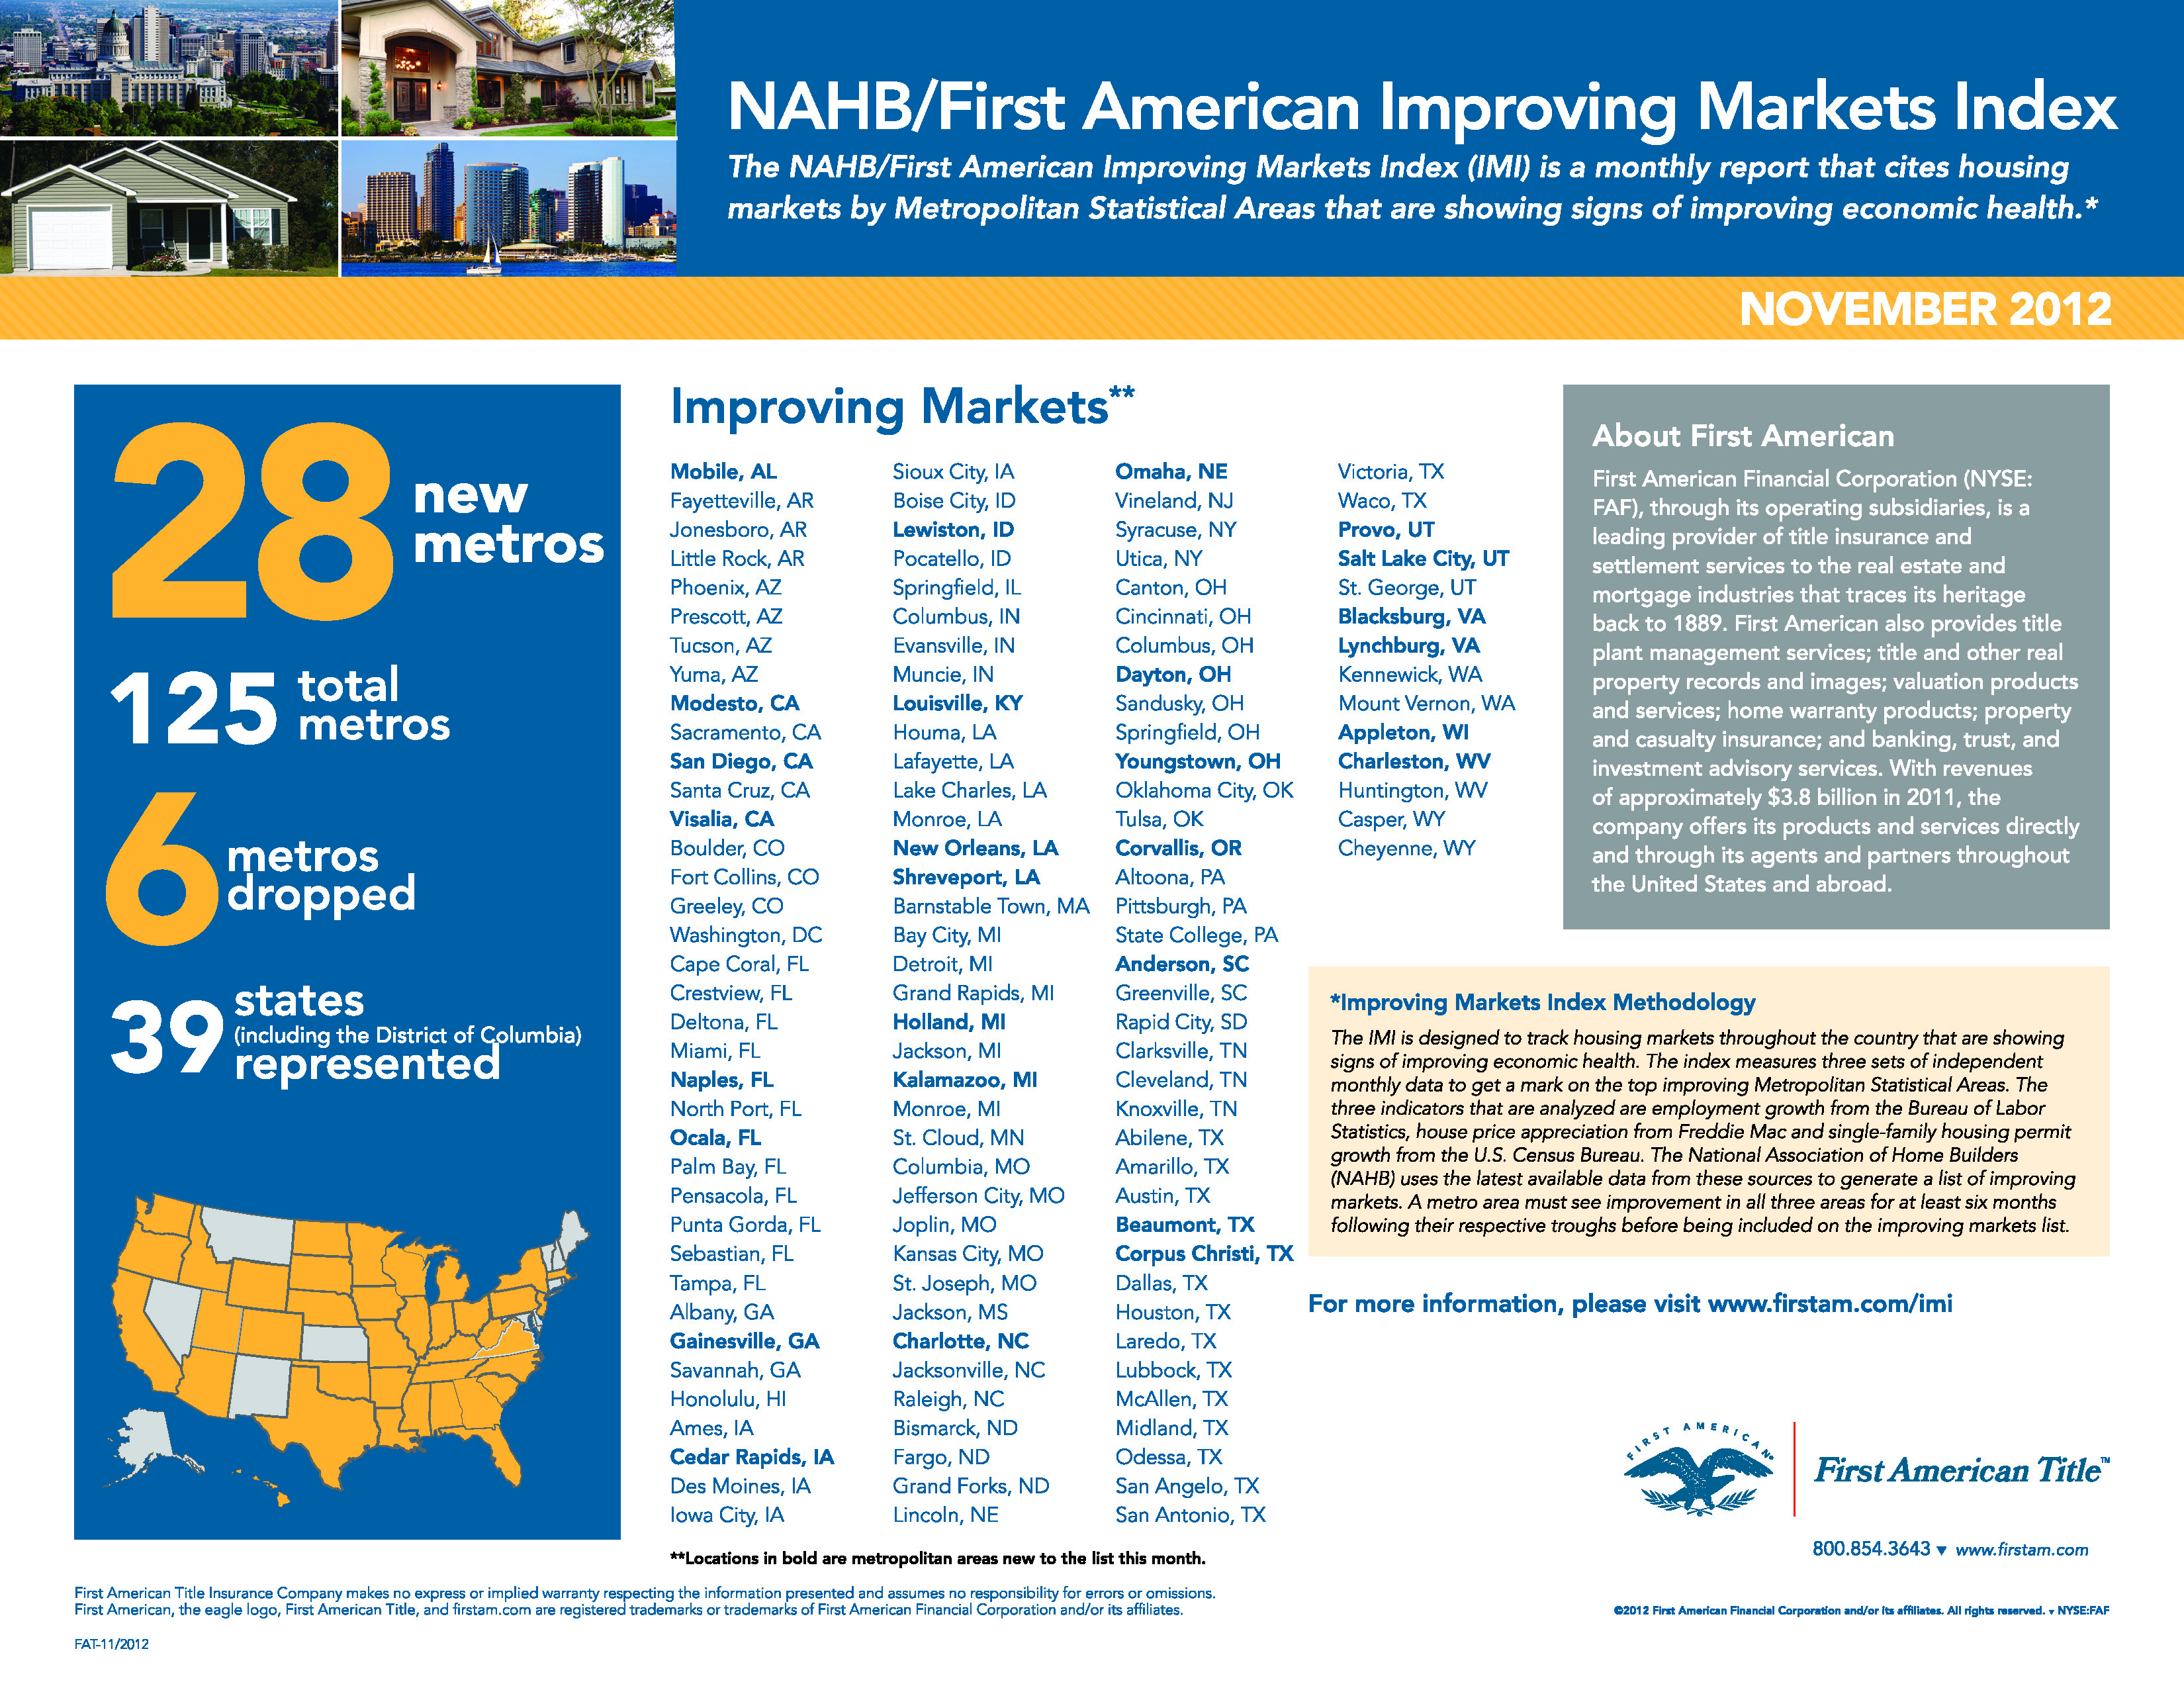 NAHB and First American's Improving Markets Index (November 2012)